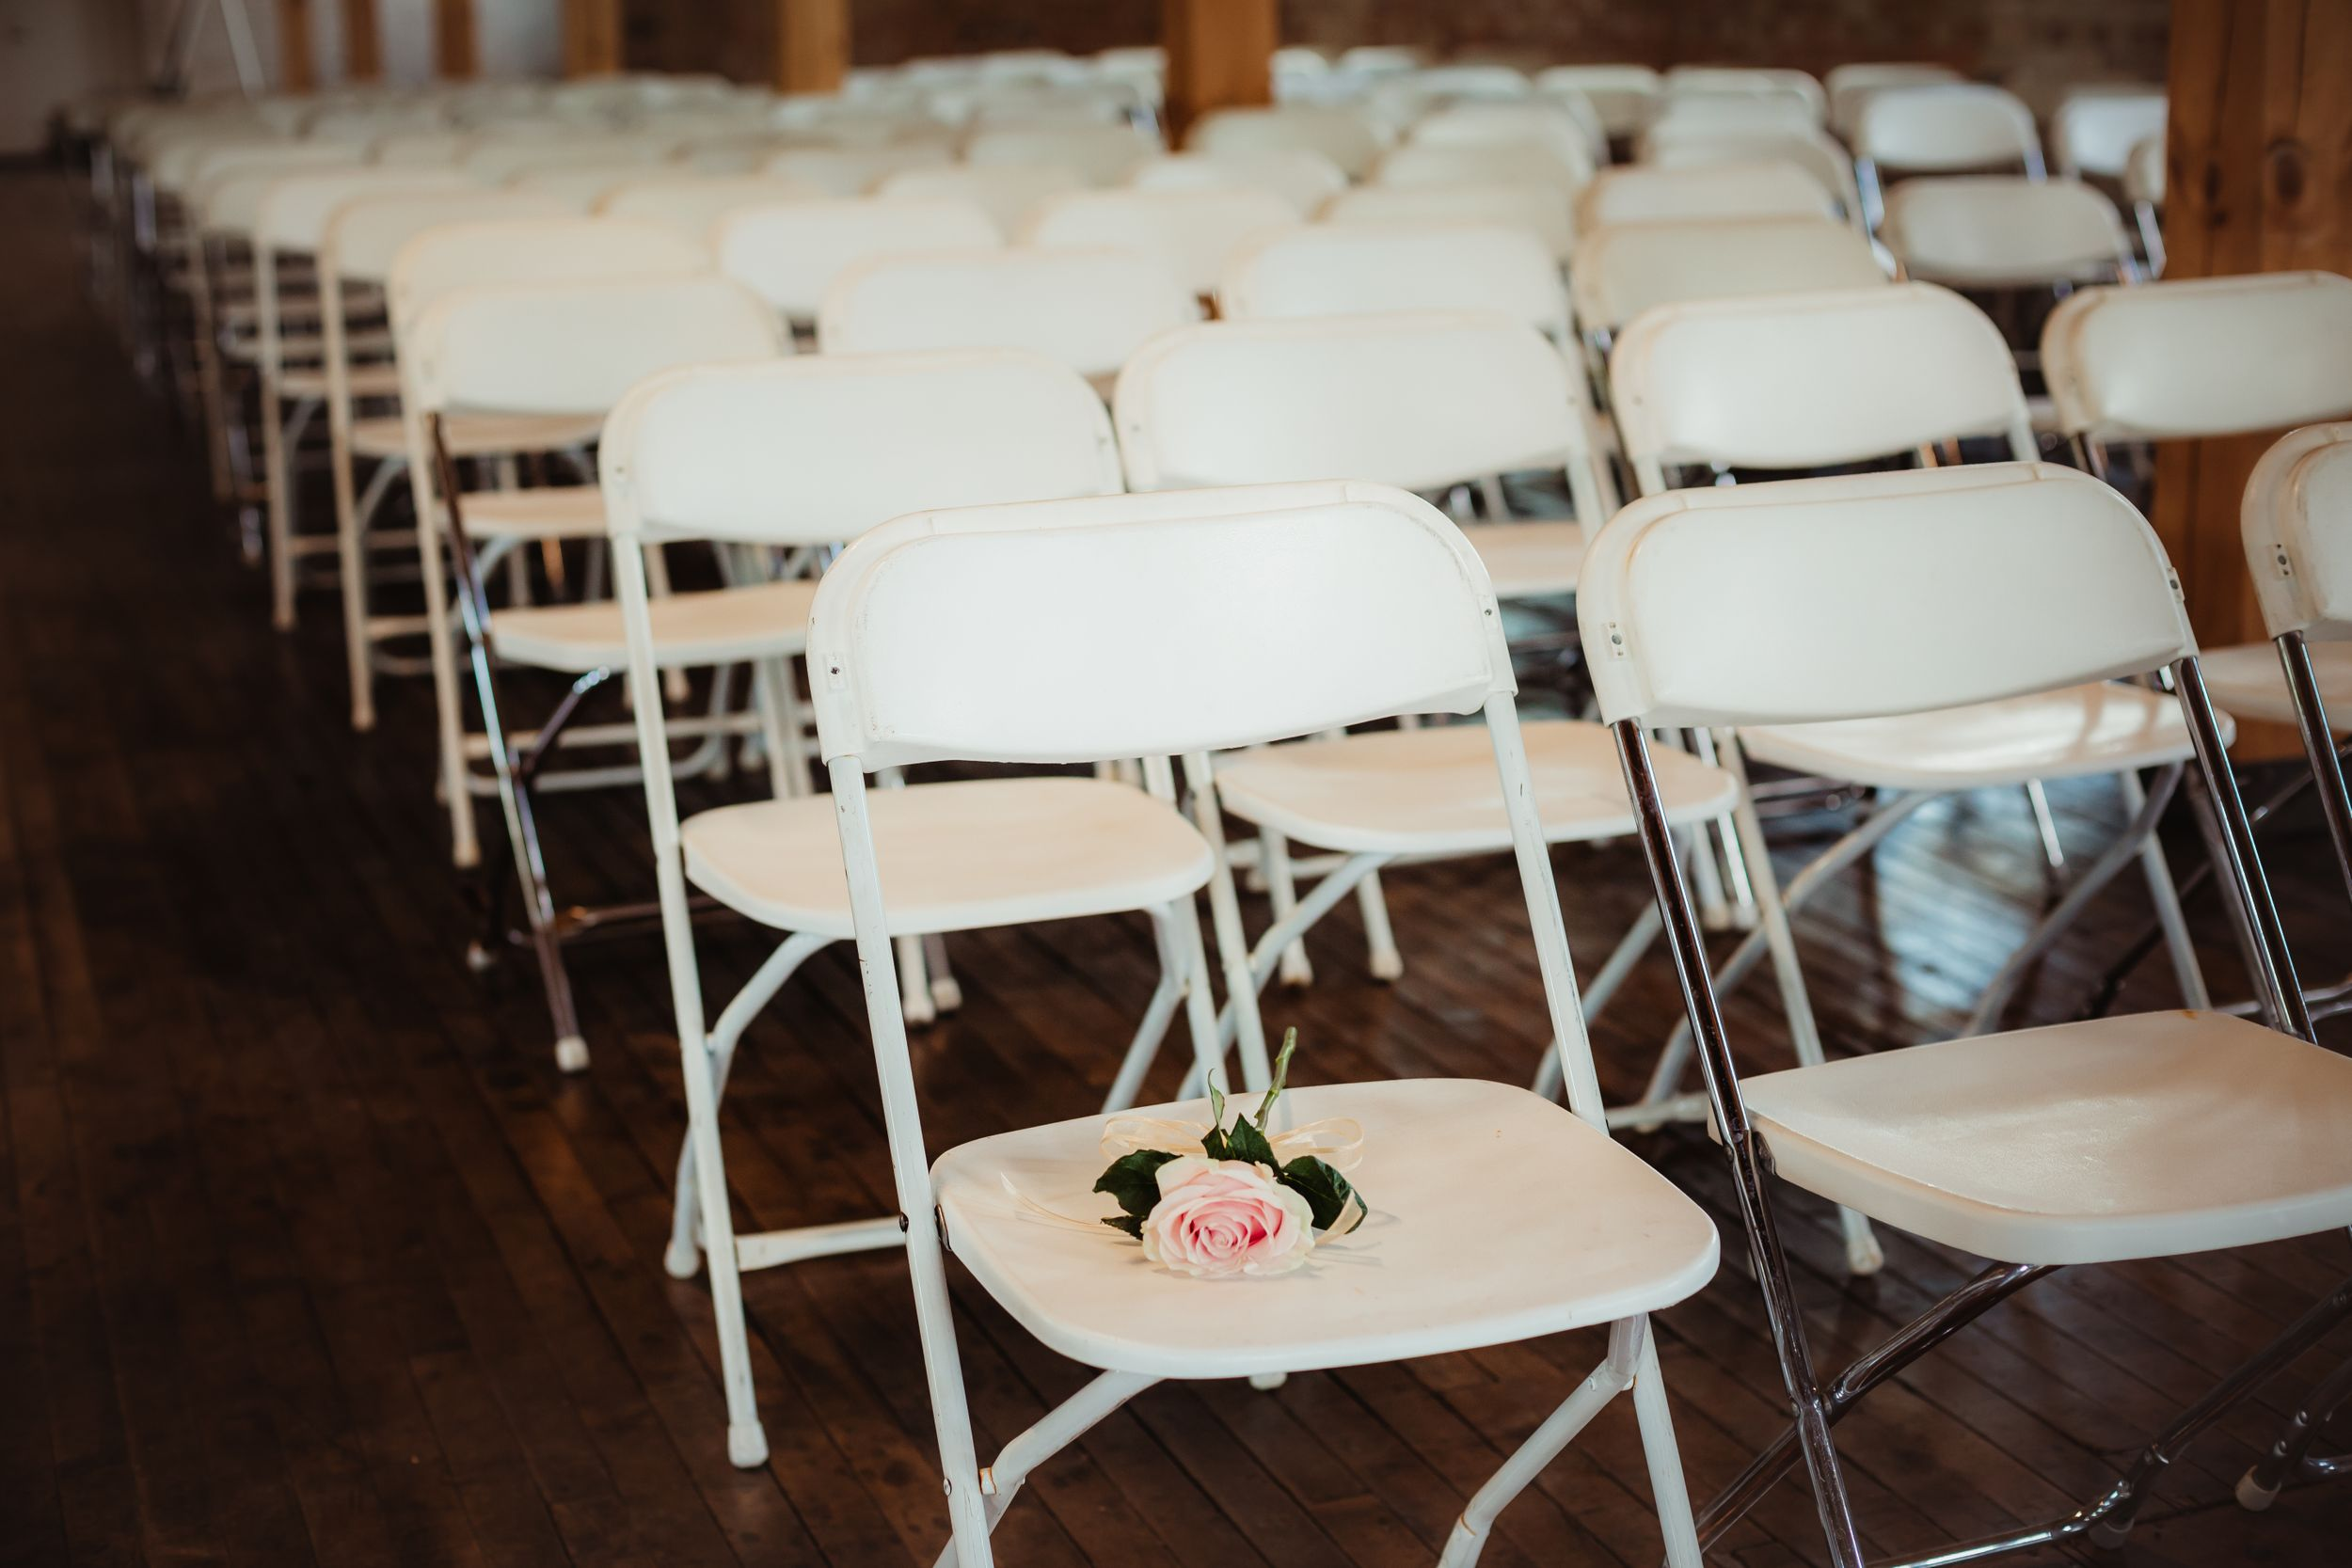 Single rose on an empty chair to represent the bride's late father.